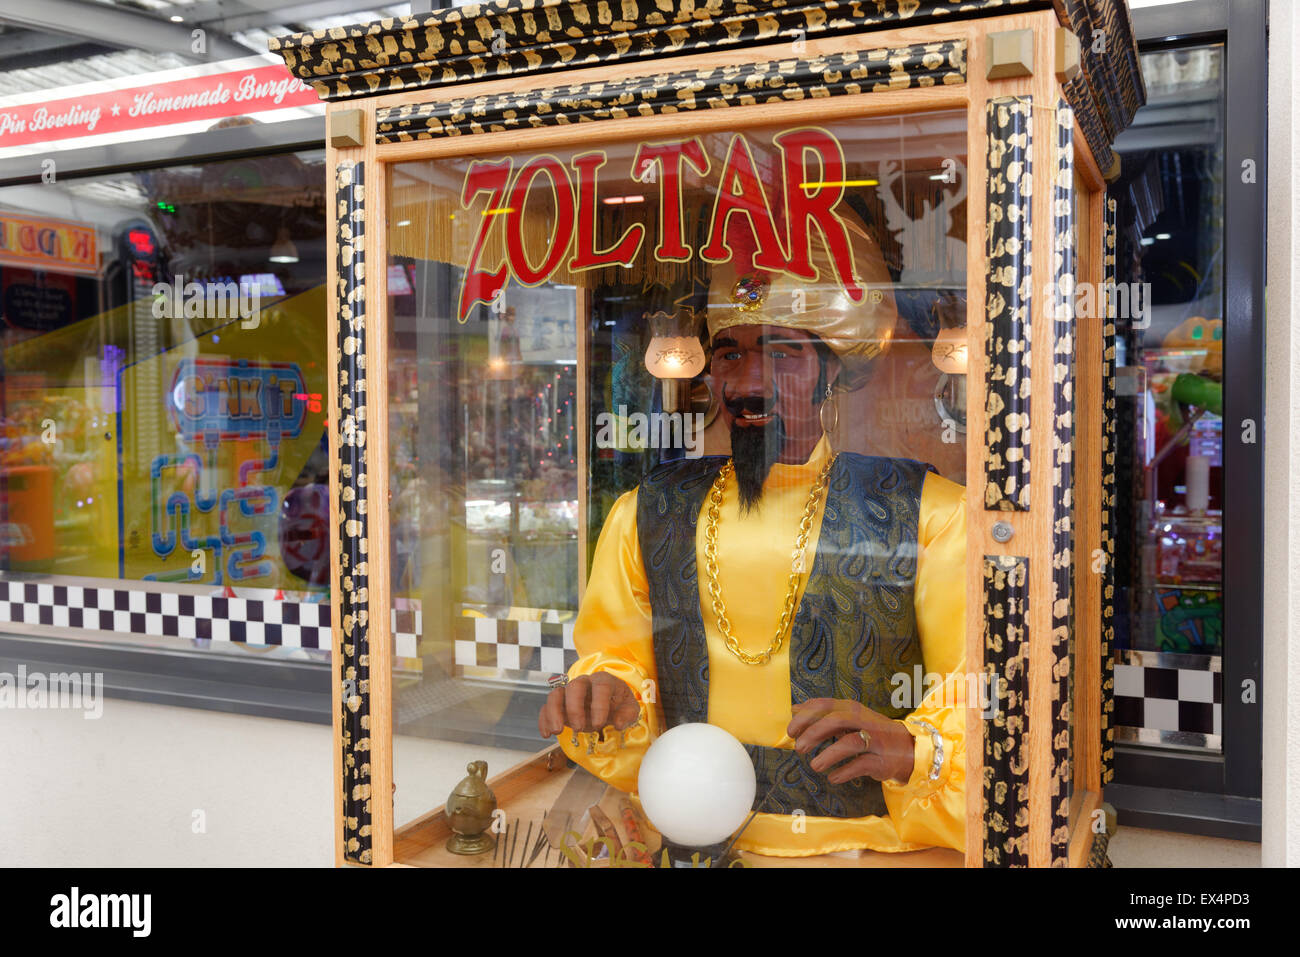 A fortune telling machine in an amusement arcade - Stock Image